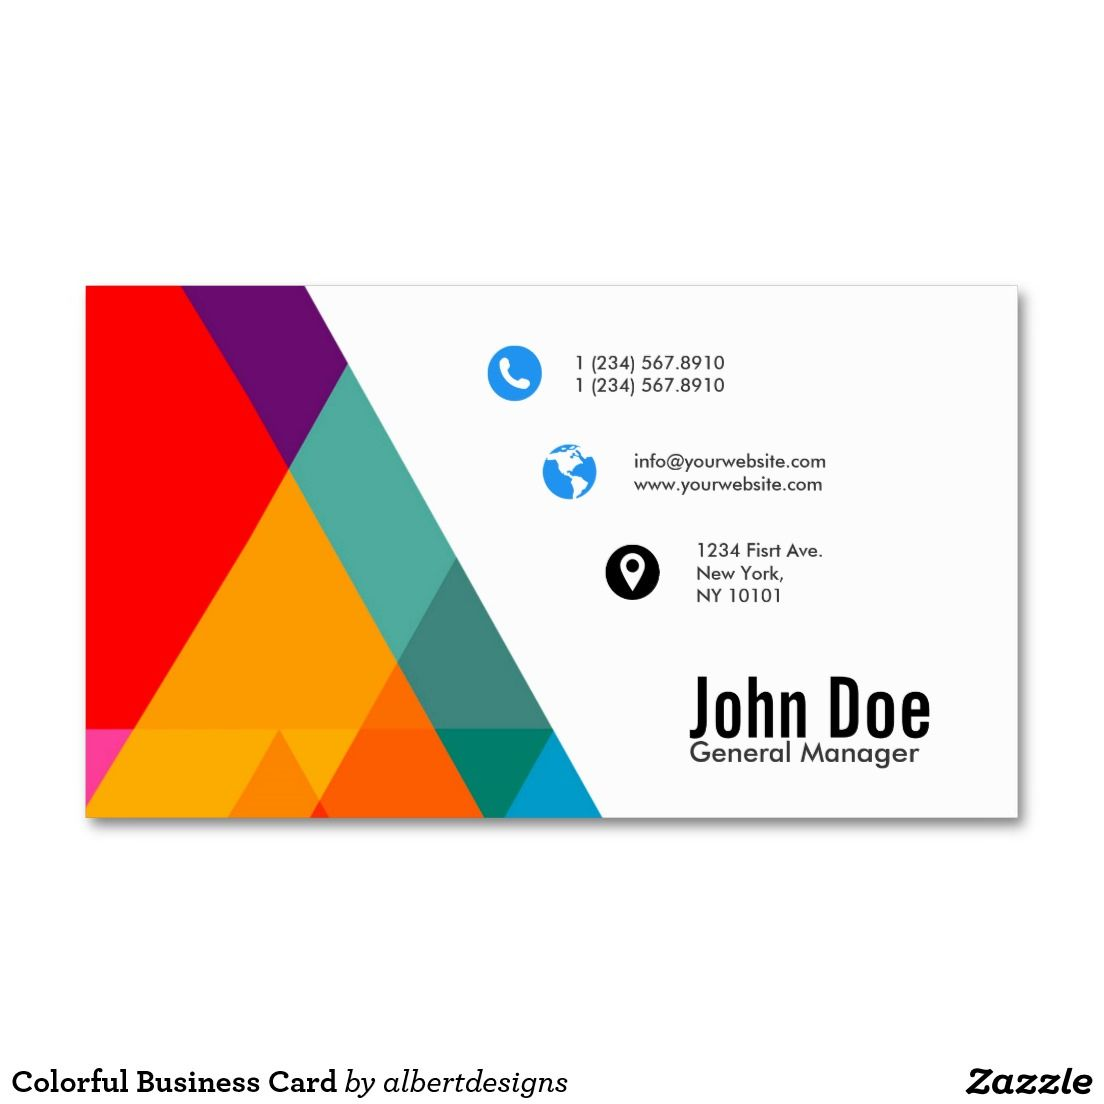 Colorful Business Card | Business cards and Business